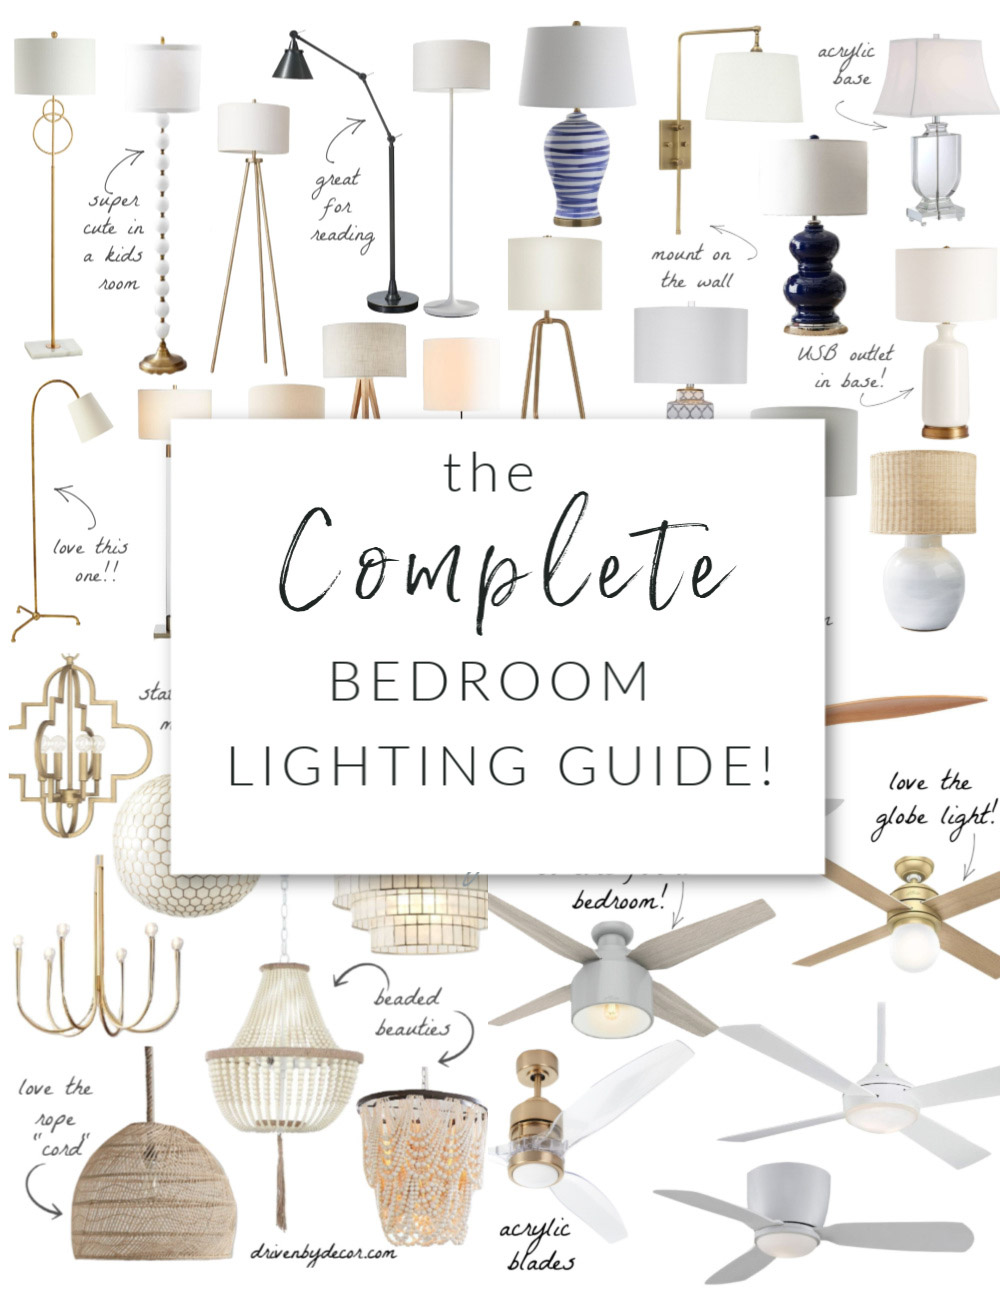 the complete bedroom lighting guide